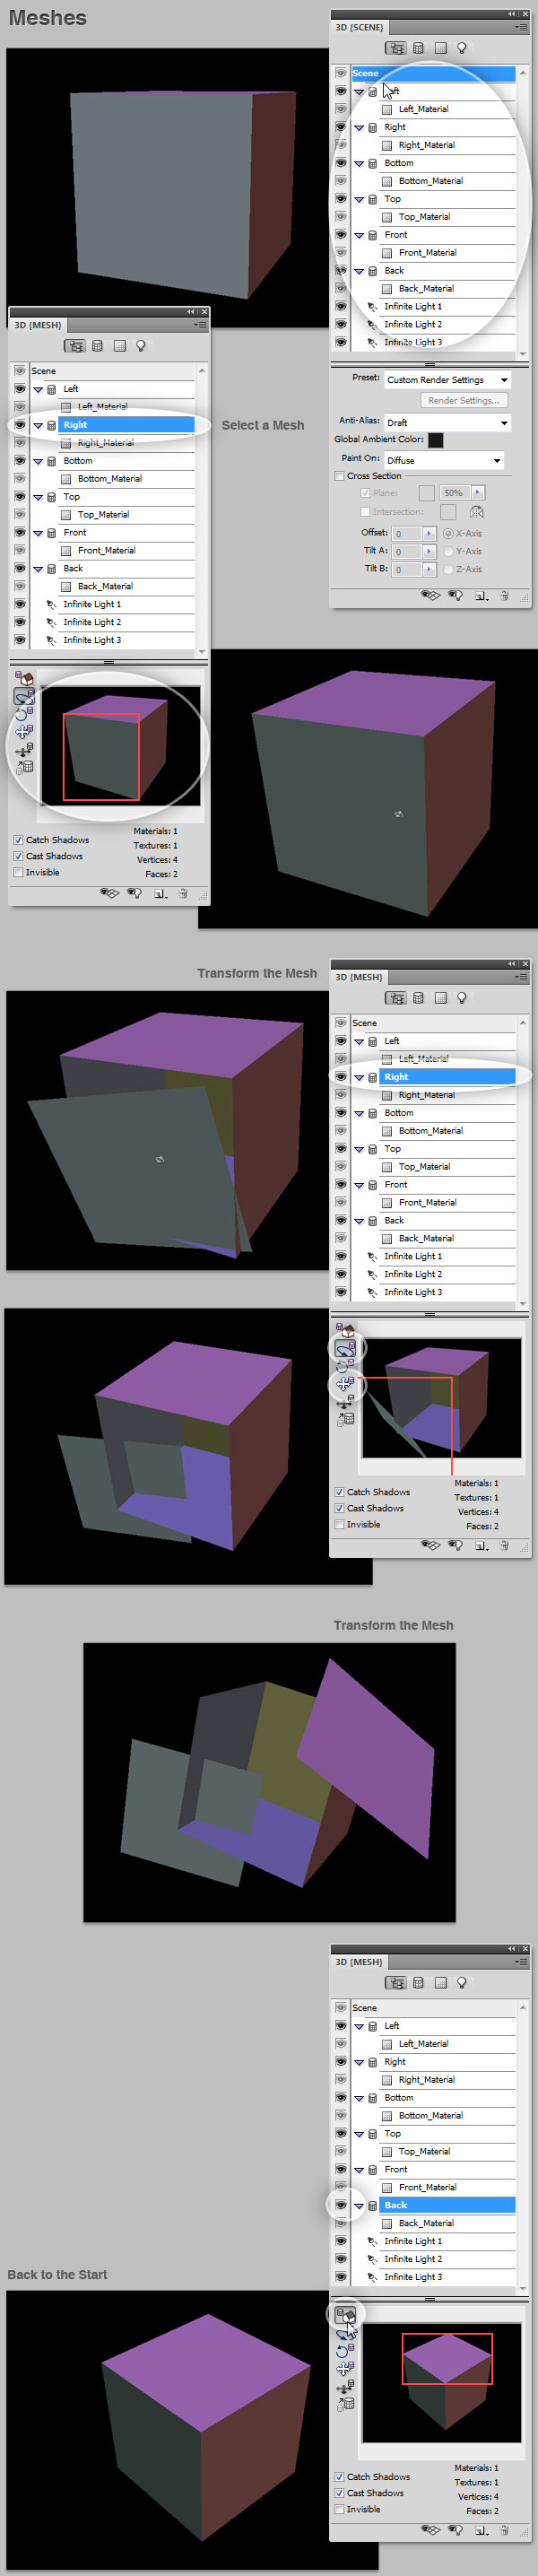 3D working with meshes